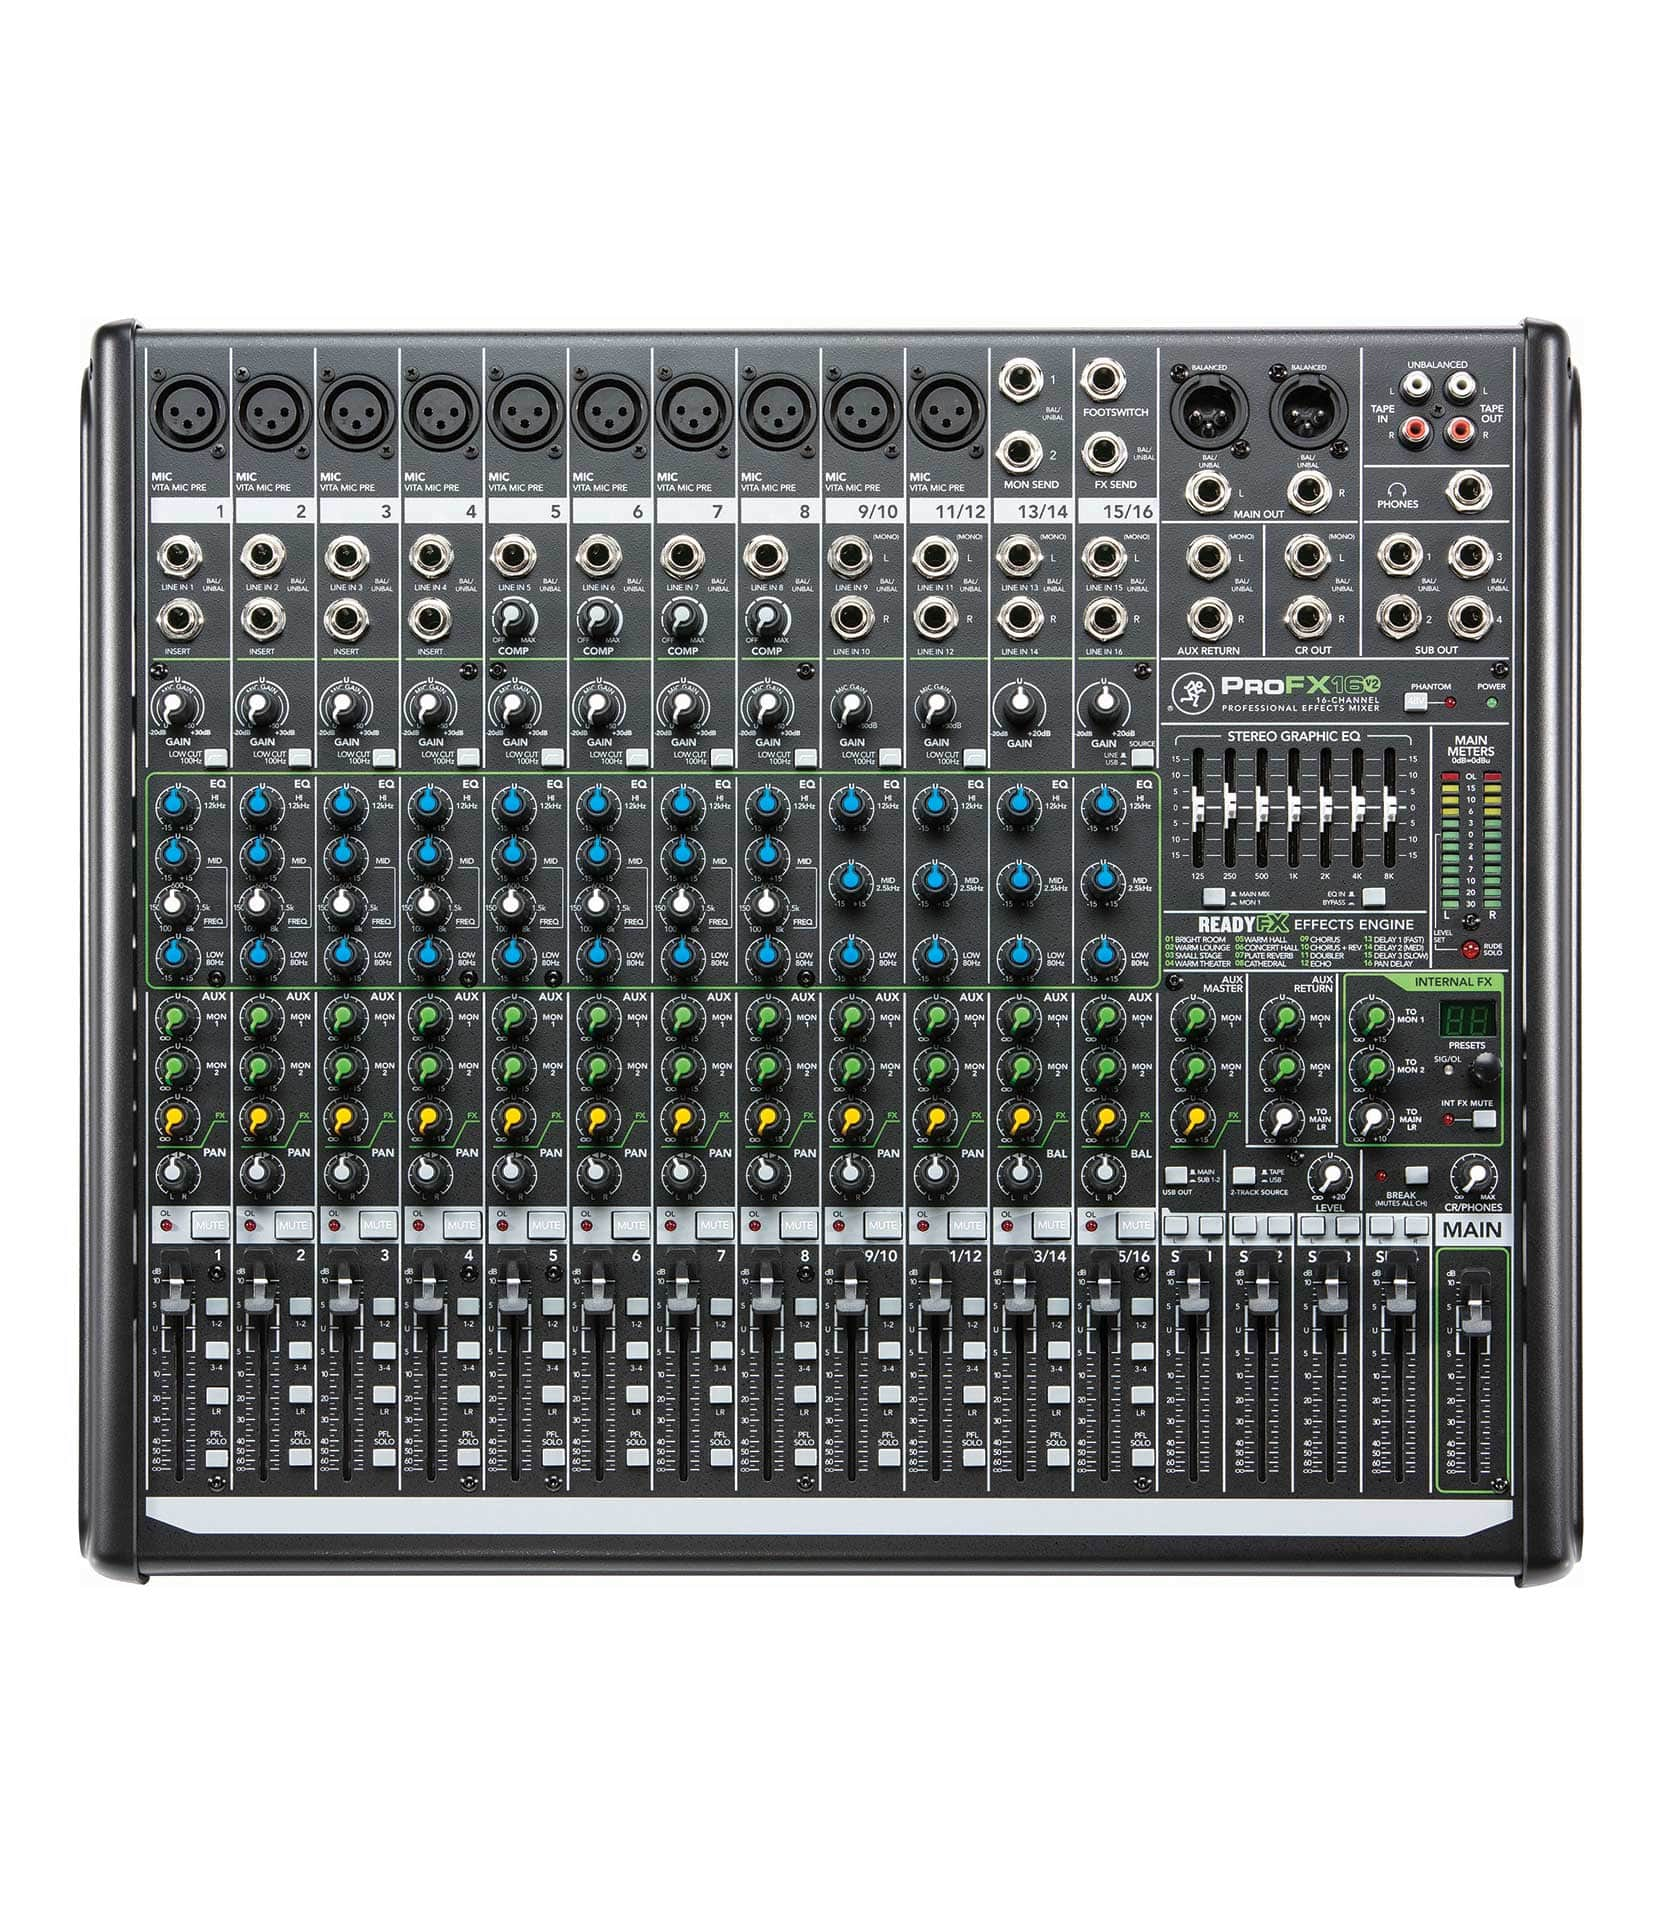 ProFX16v2 EU 16 channel 4 Bus Effects Mixer with U